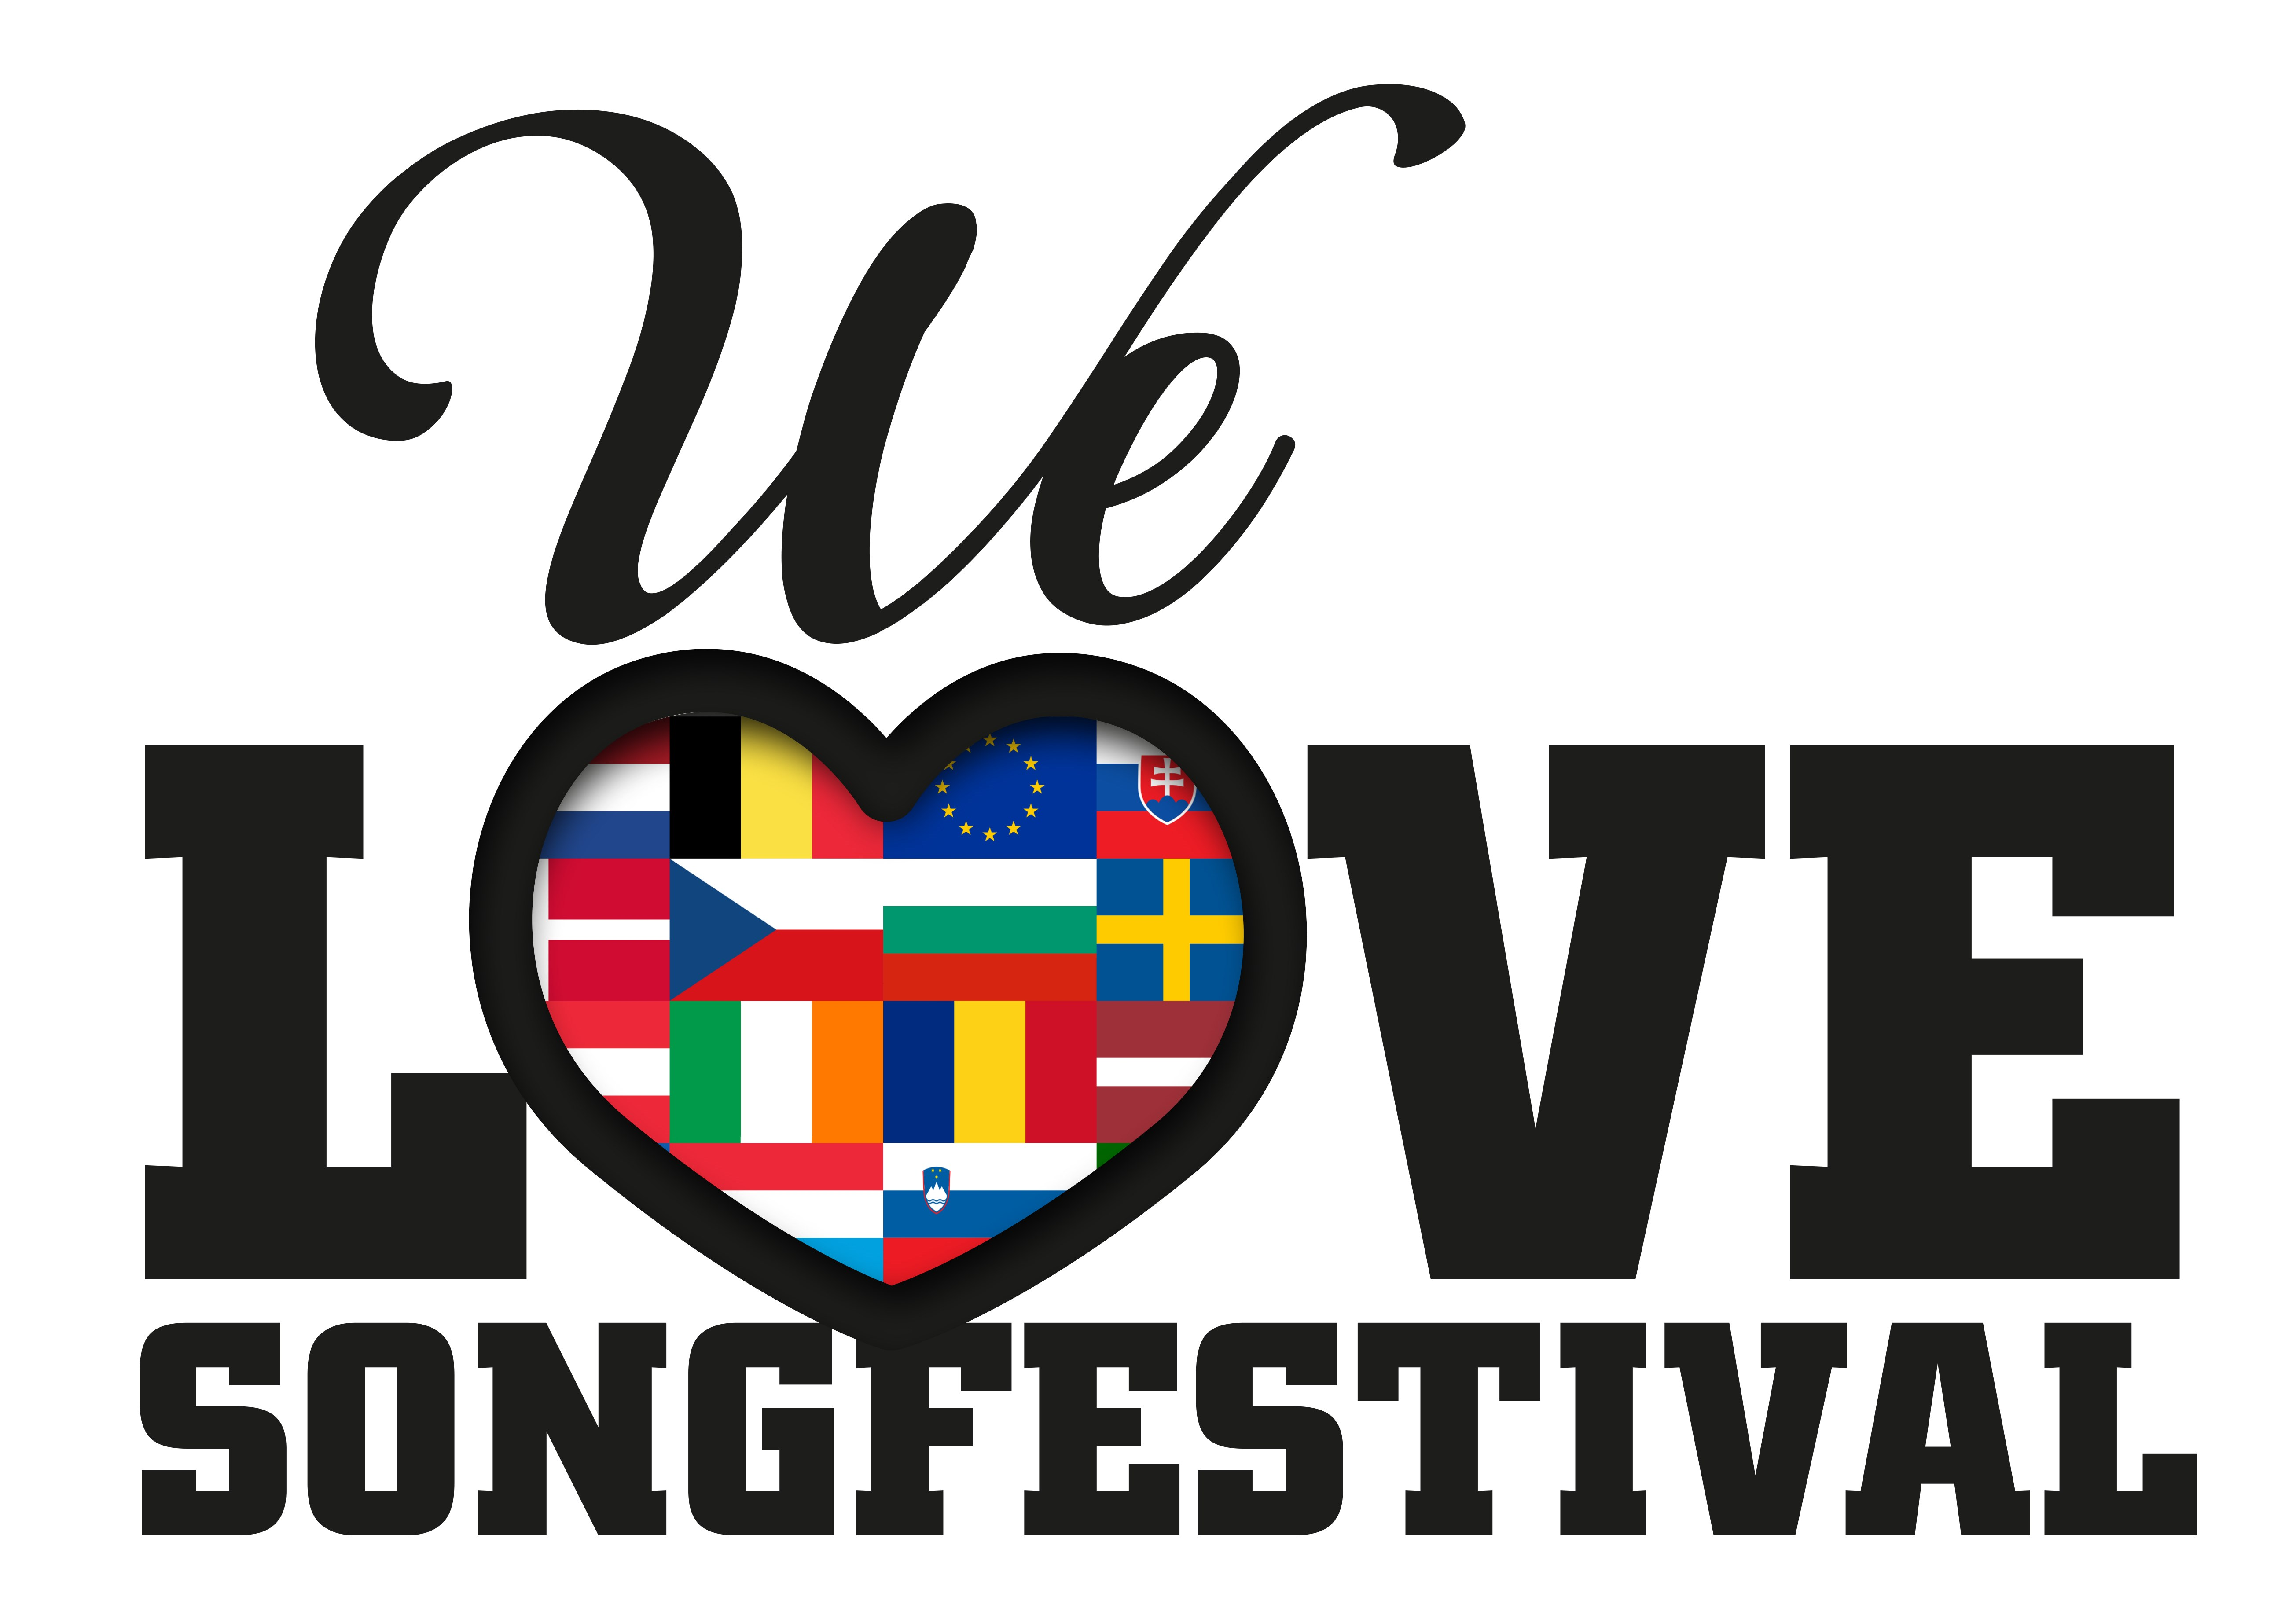 We love Songfestival logo.jpg